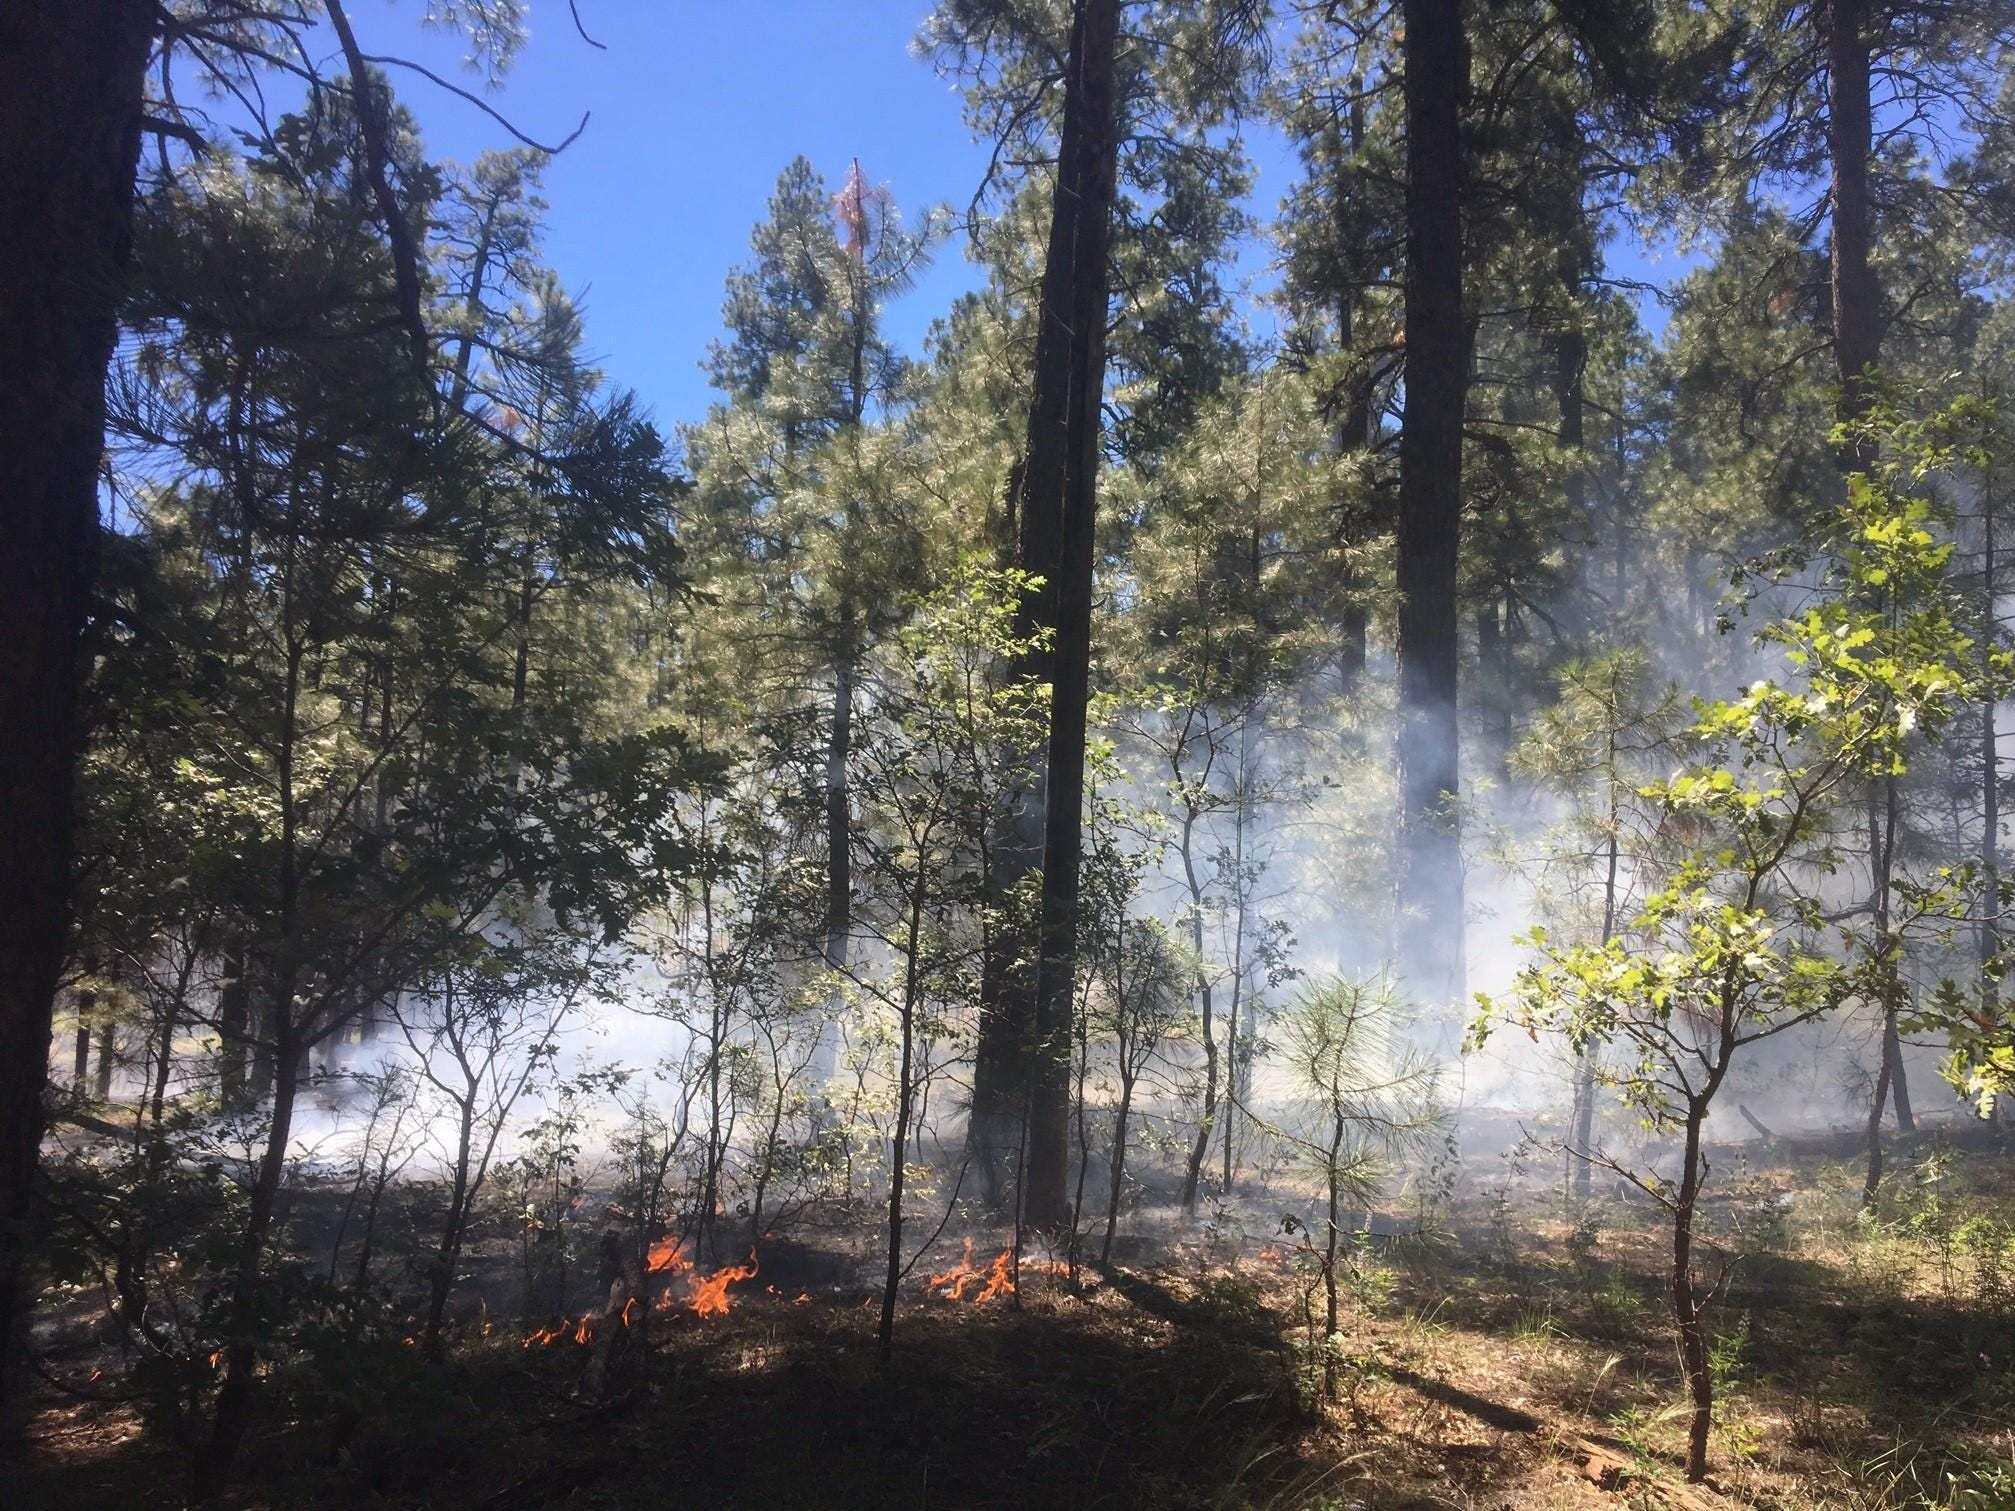 The Perkins Fire as seen on Aug. 31, 2018.